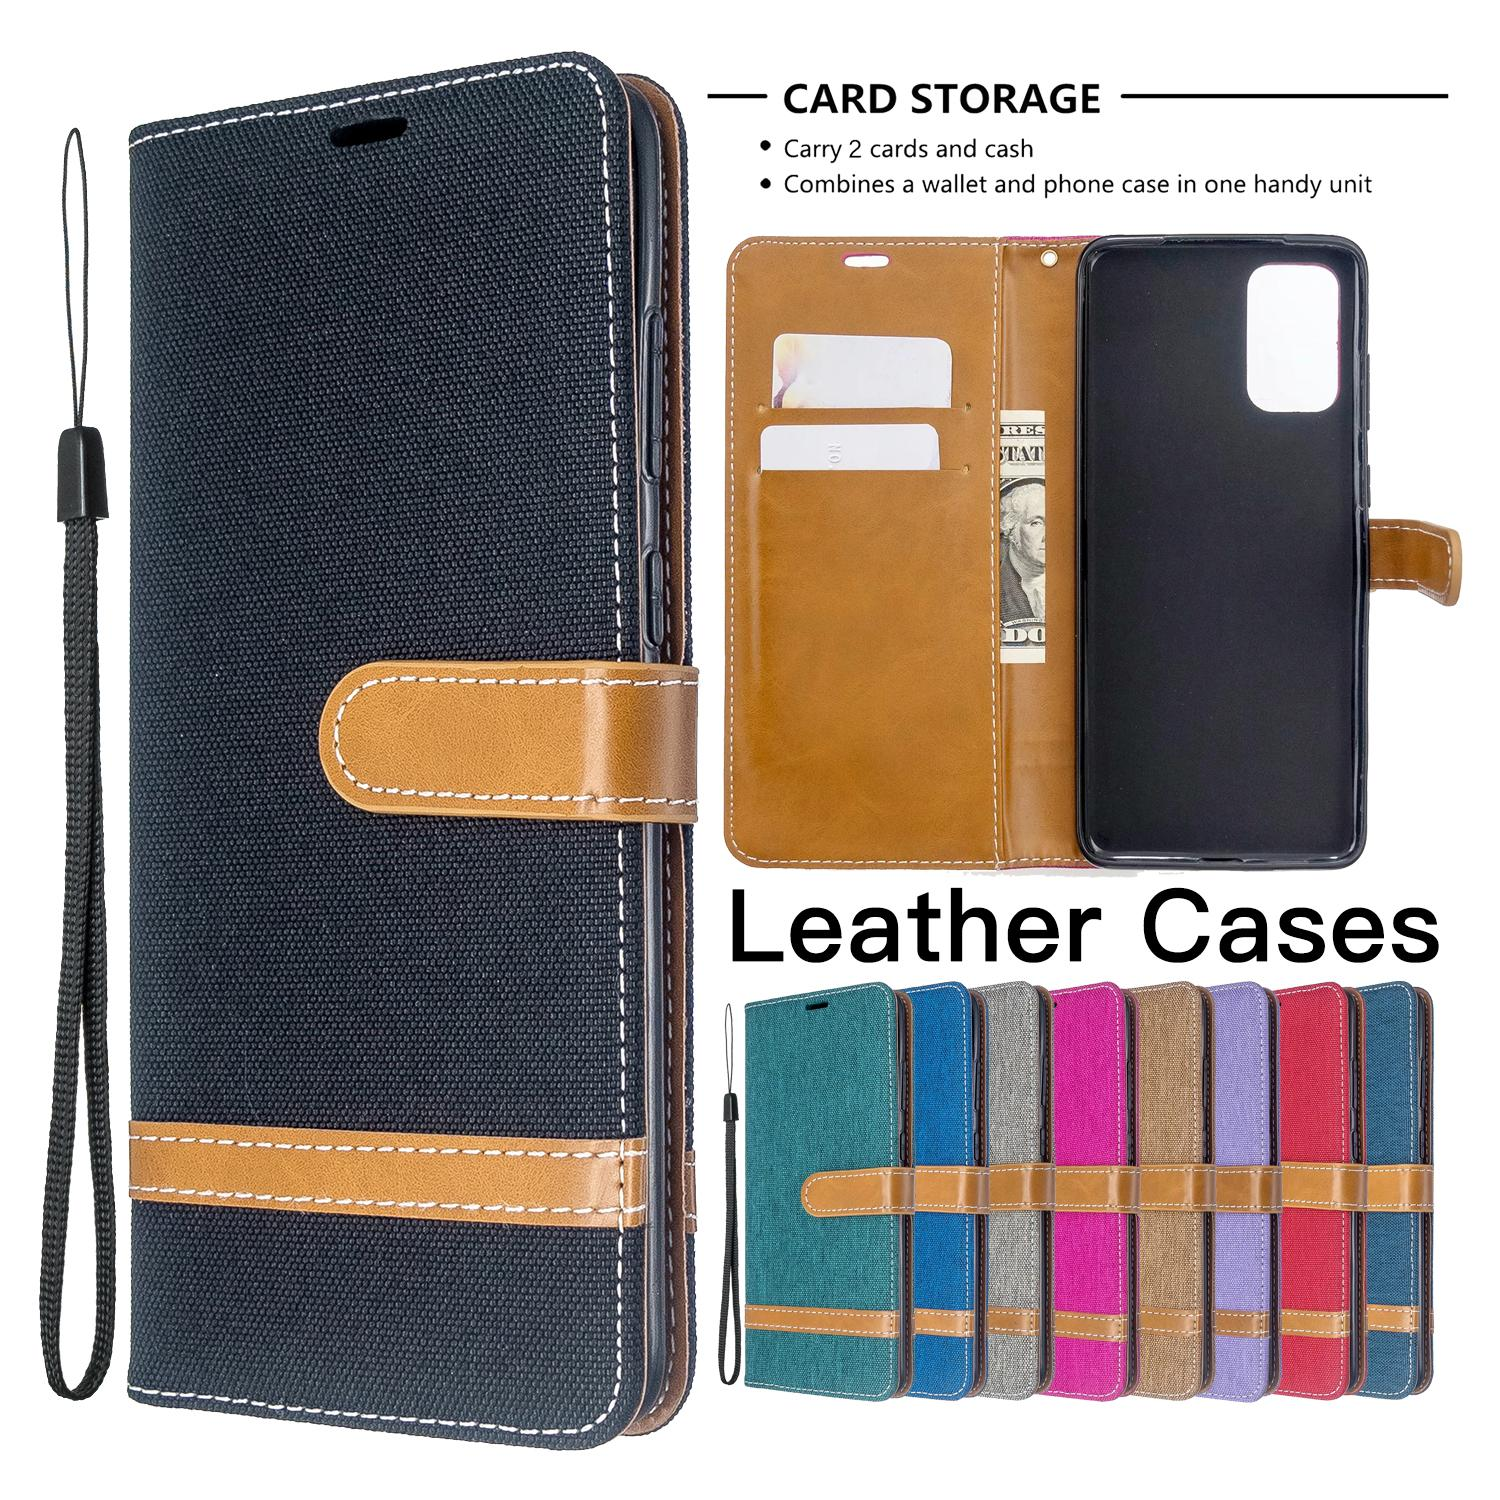 TPU PU Leather Wallet Phone Case for Samsung Galaxy S20 Ultra S10 S9 Plus Note 10 iPhone 11 Pro Max Denim Cloth Flip Stand Cover Case